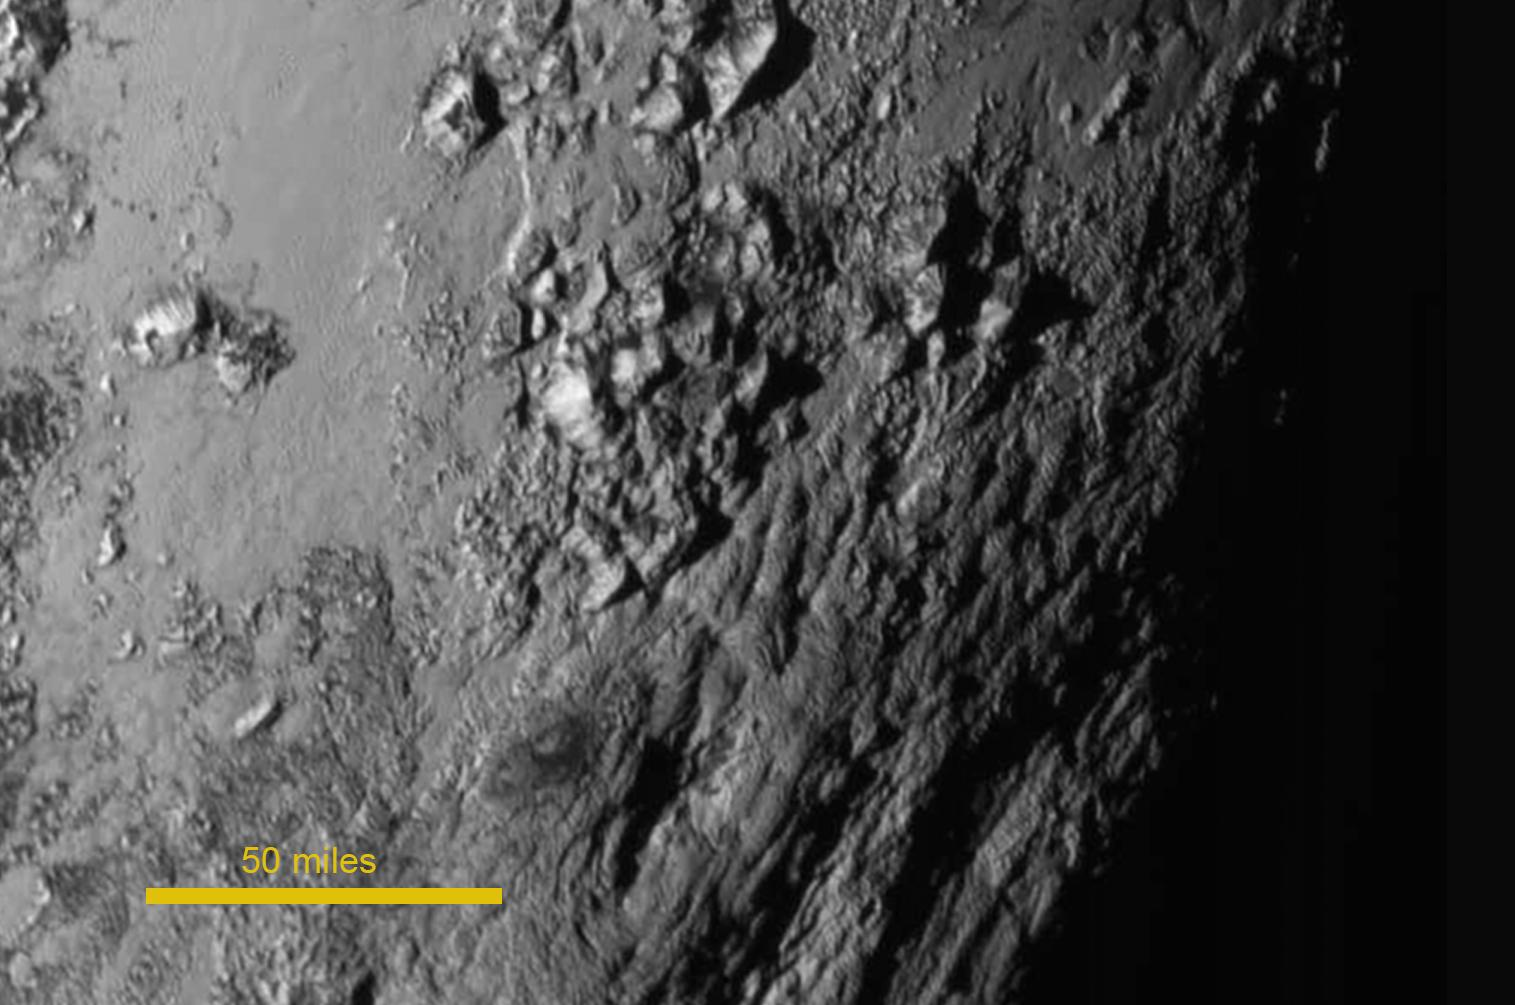 pluto-surface-scale